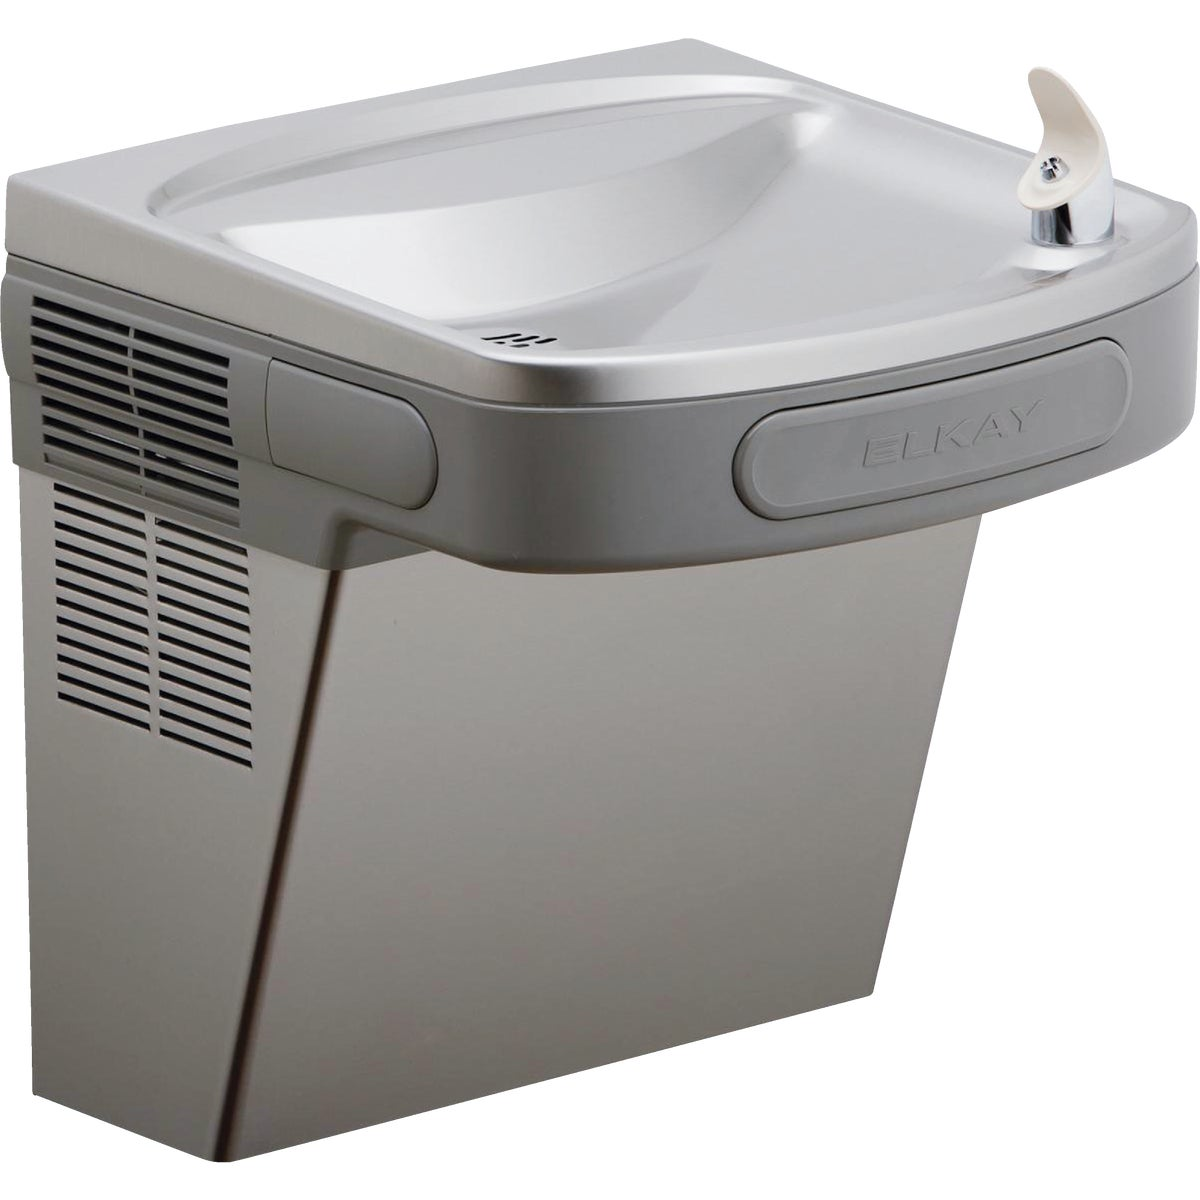 SINGLE 8GAL WATER COOLER - 503364 by Oasis International